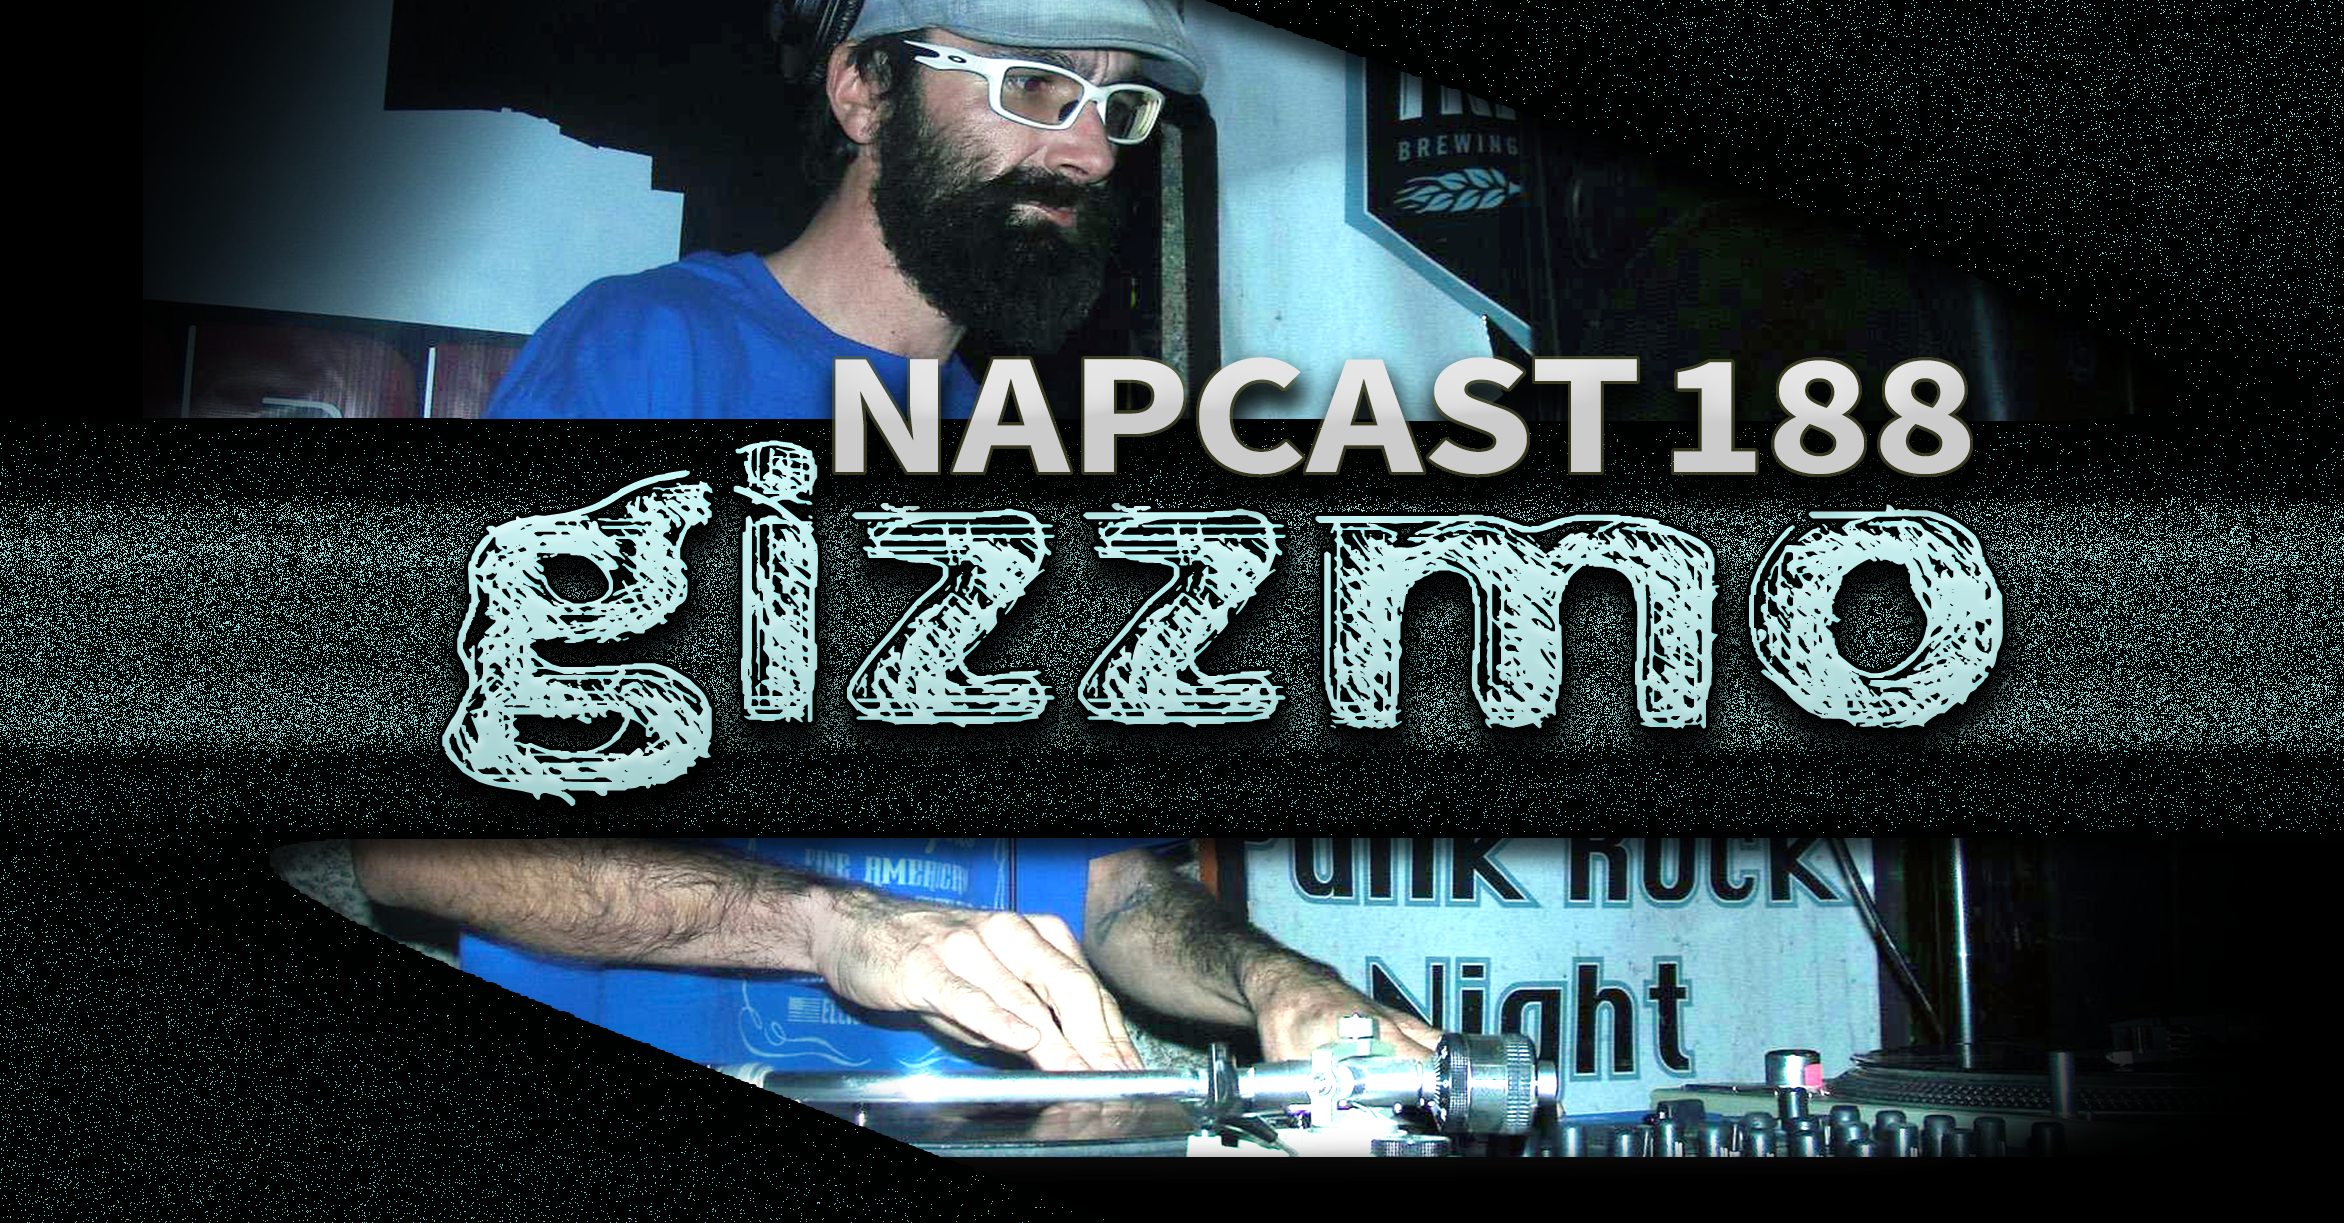 [Mix] NAP DNB presents NAPCast 188 - Gizzmo